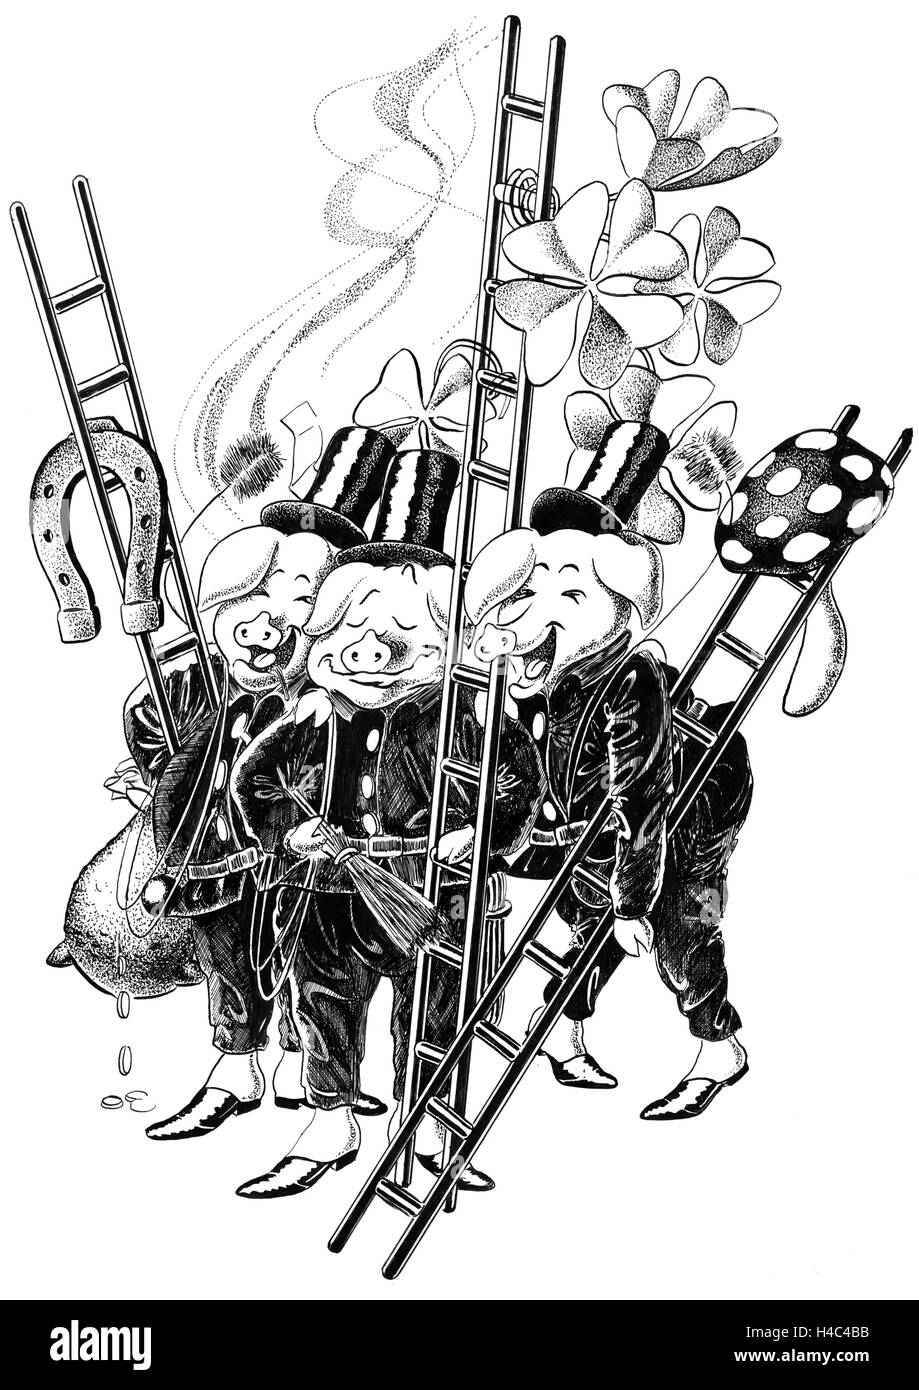 Chimney sweep pigs with ladders and horseshoes at New Year - Stock Image